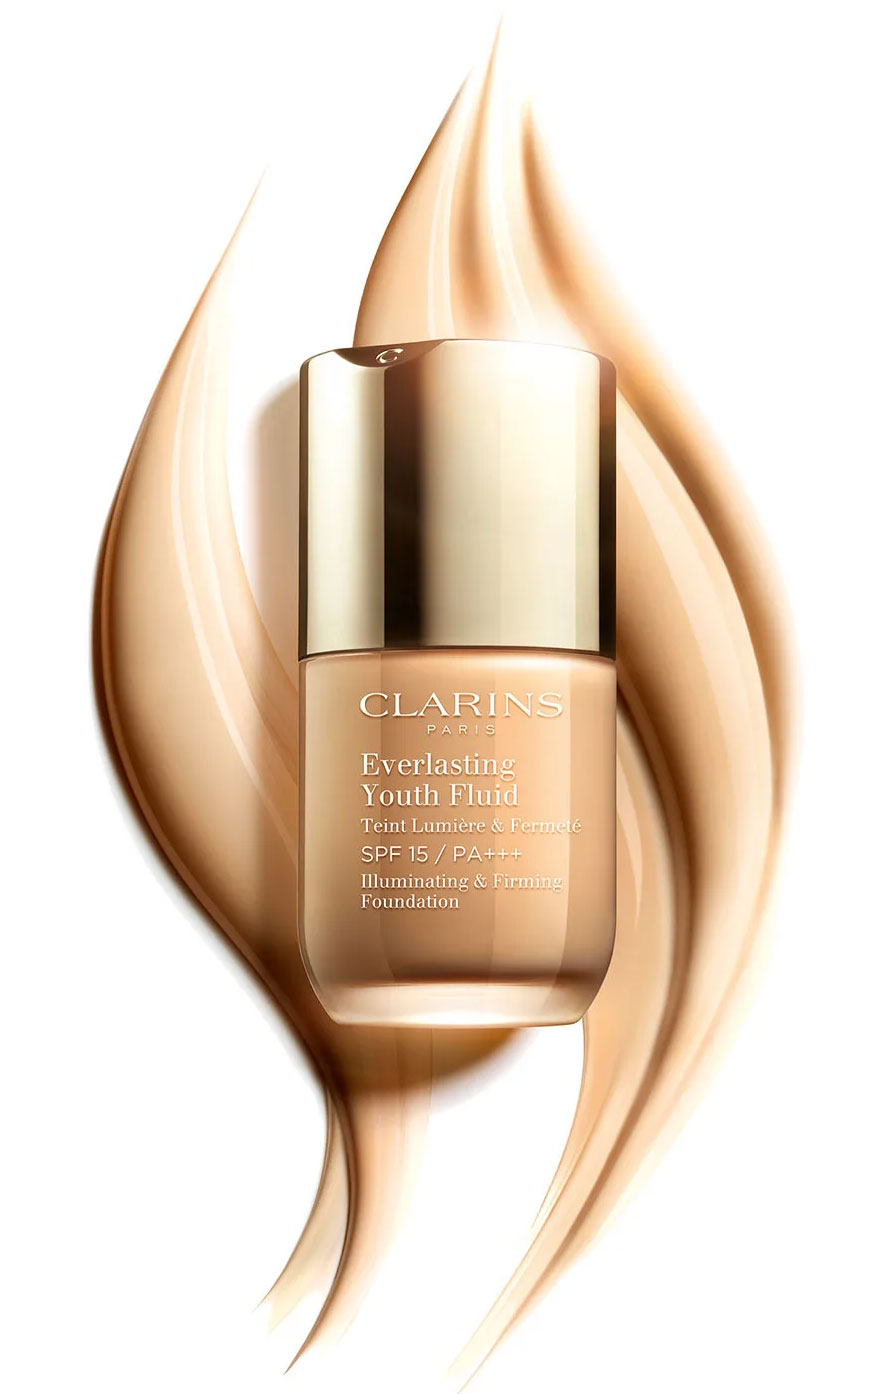 Clarins-Everlasting-Youth-Fluid-Foundation-visual-2